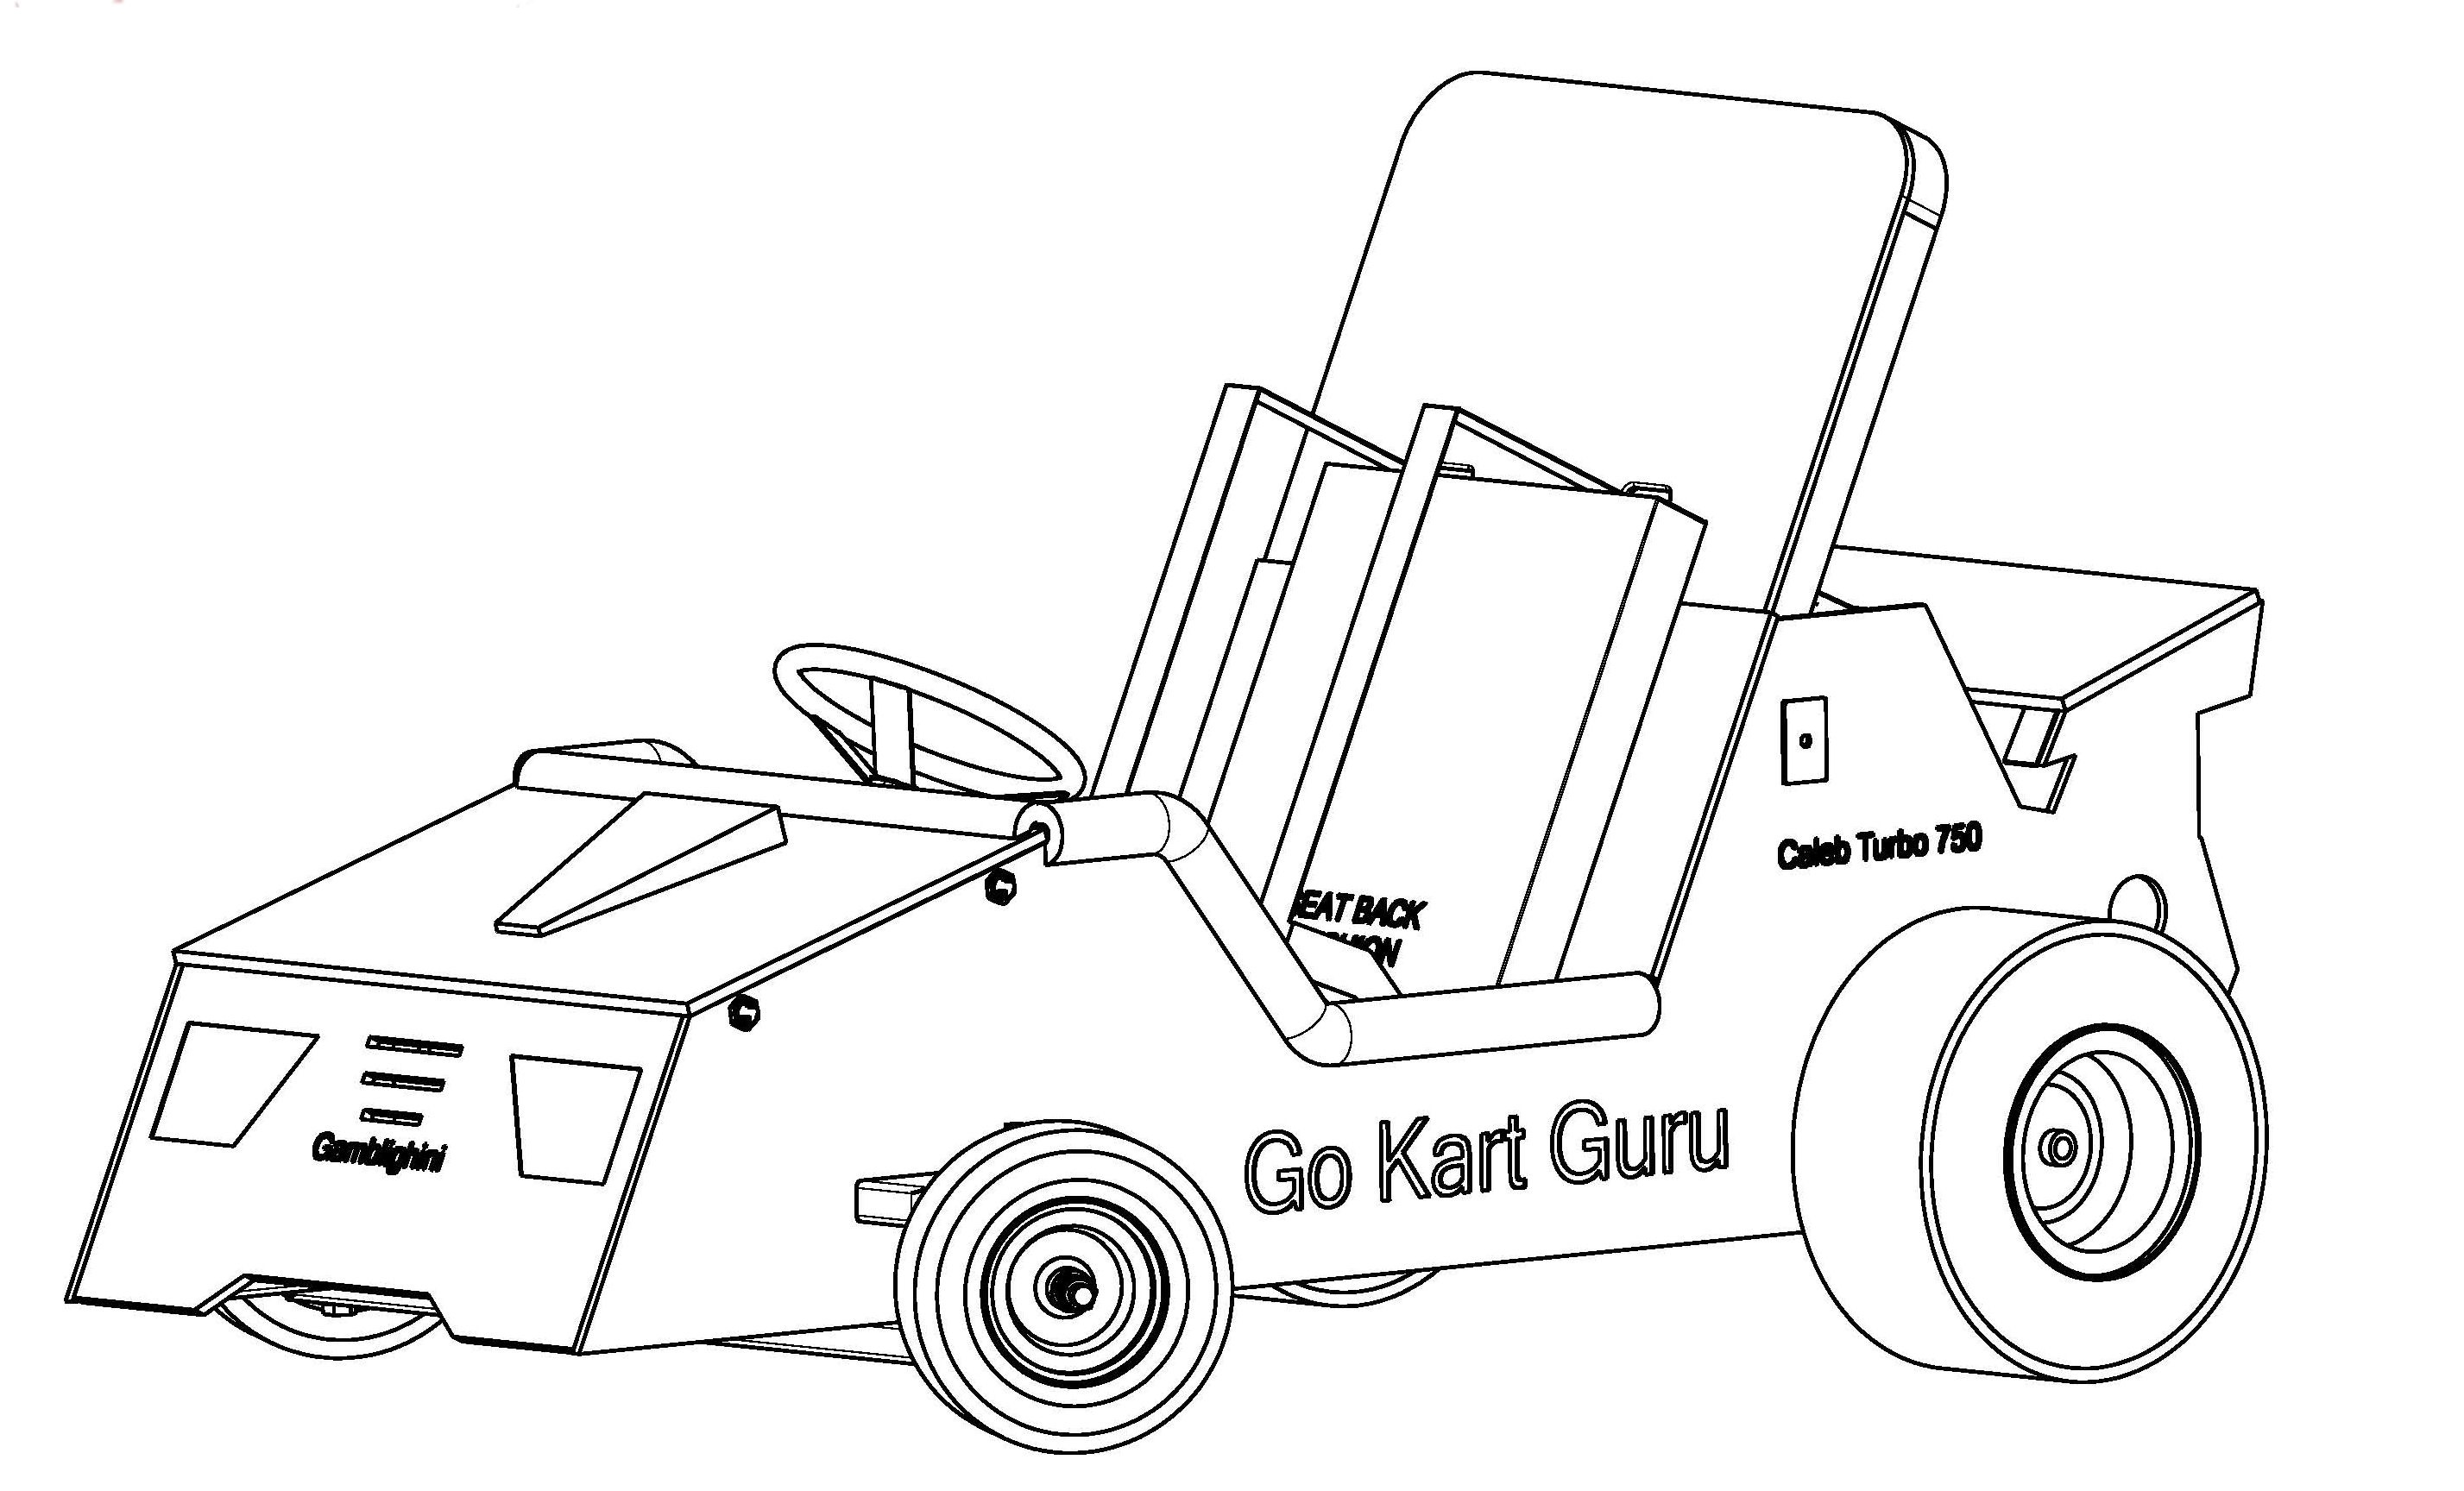 Go Kart Guru - Wooden Go Kart: Great Father and Son Weekend Project